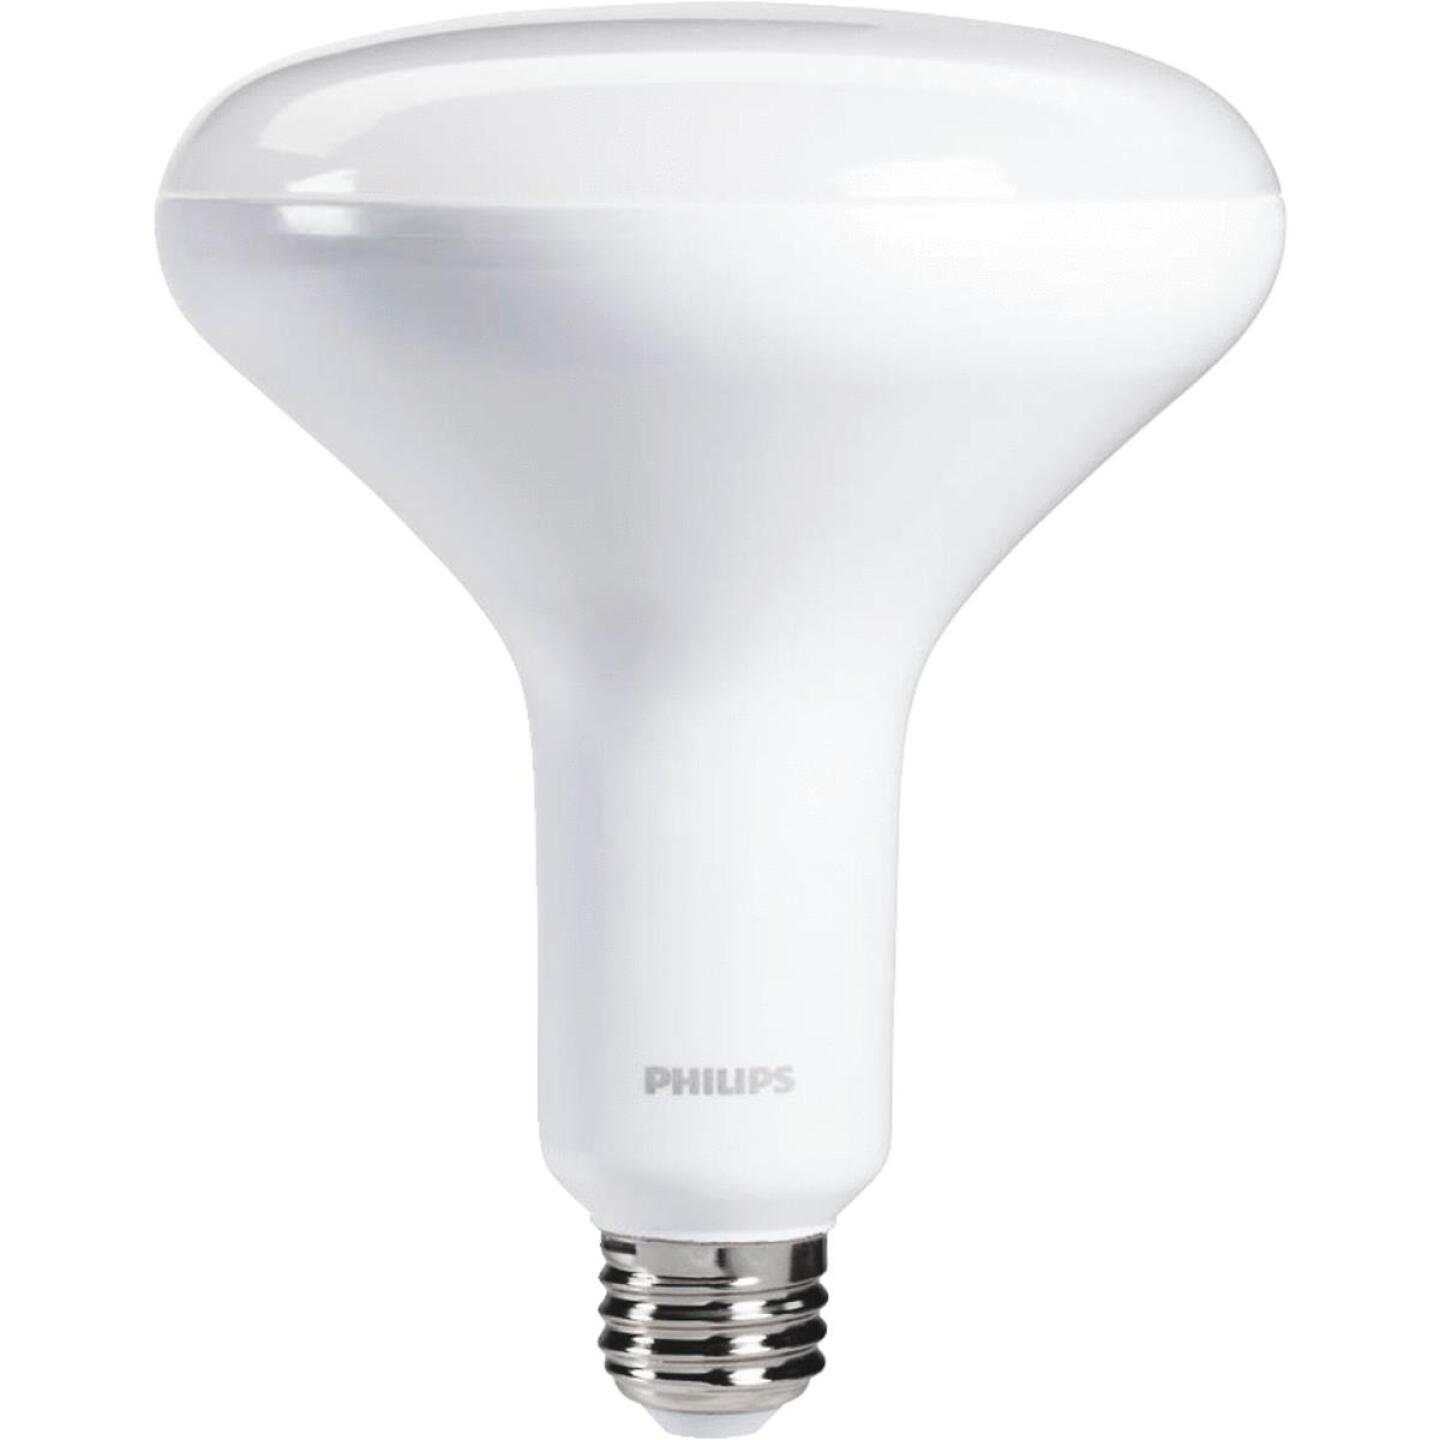 Philips 65W Equivalent Daylight BR40 Medium Dimmable LED Floodlight Light Bulb Image 1